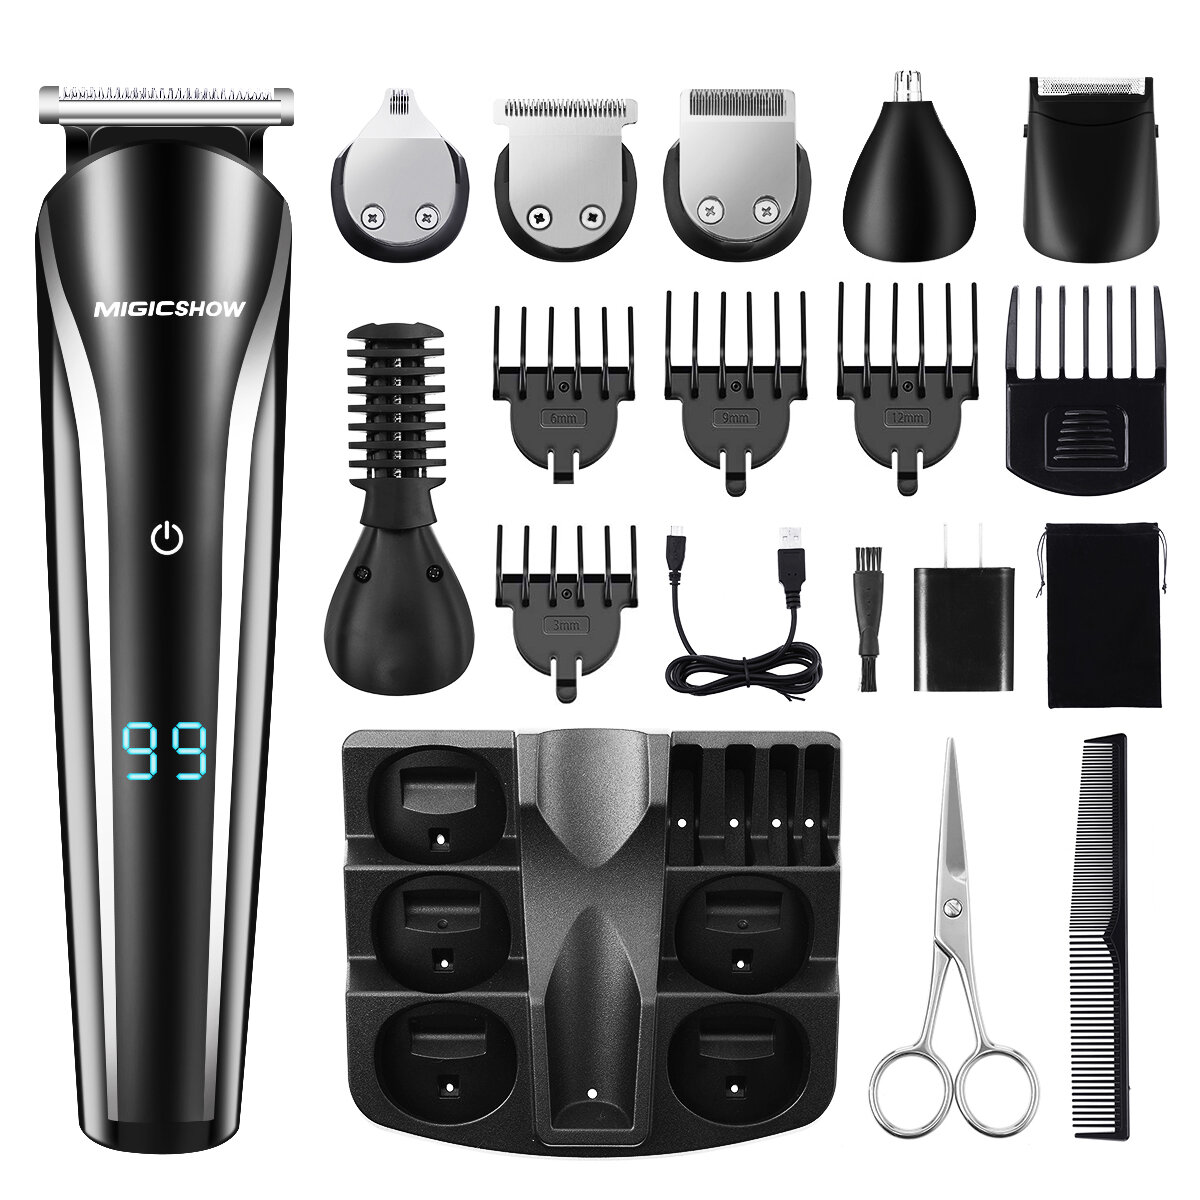 Professional Hair Trimmer Men MIGICSHOW Beard Trimmer Shaving 11 In 1 Electric...